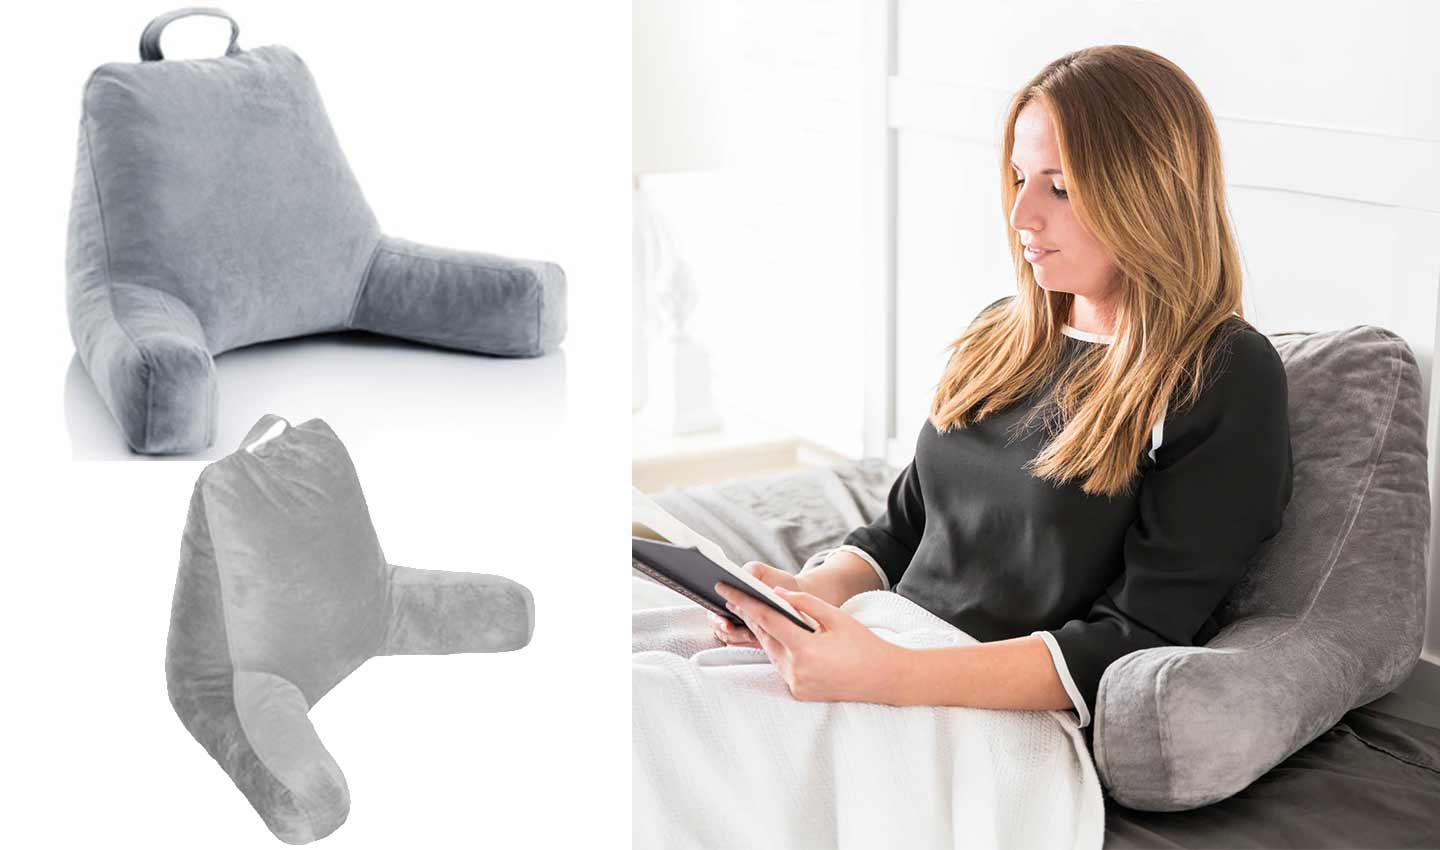 The 10 Best Reading Pillows To Buy In 2019 Updated